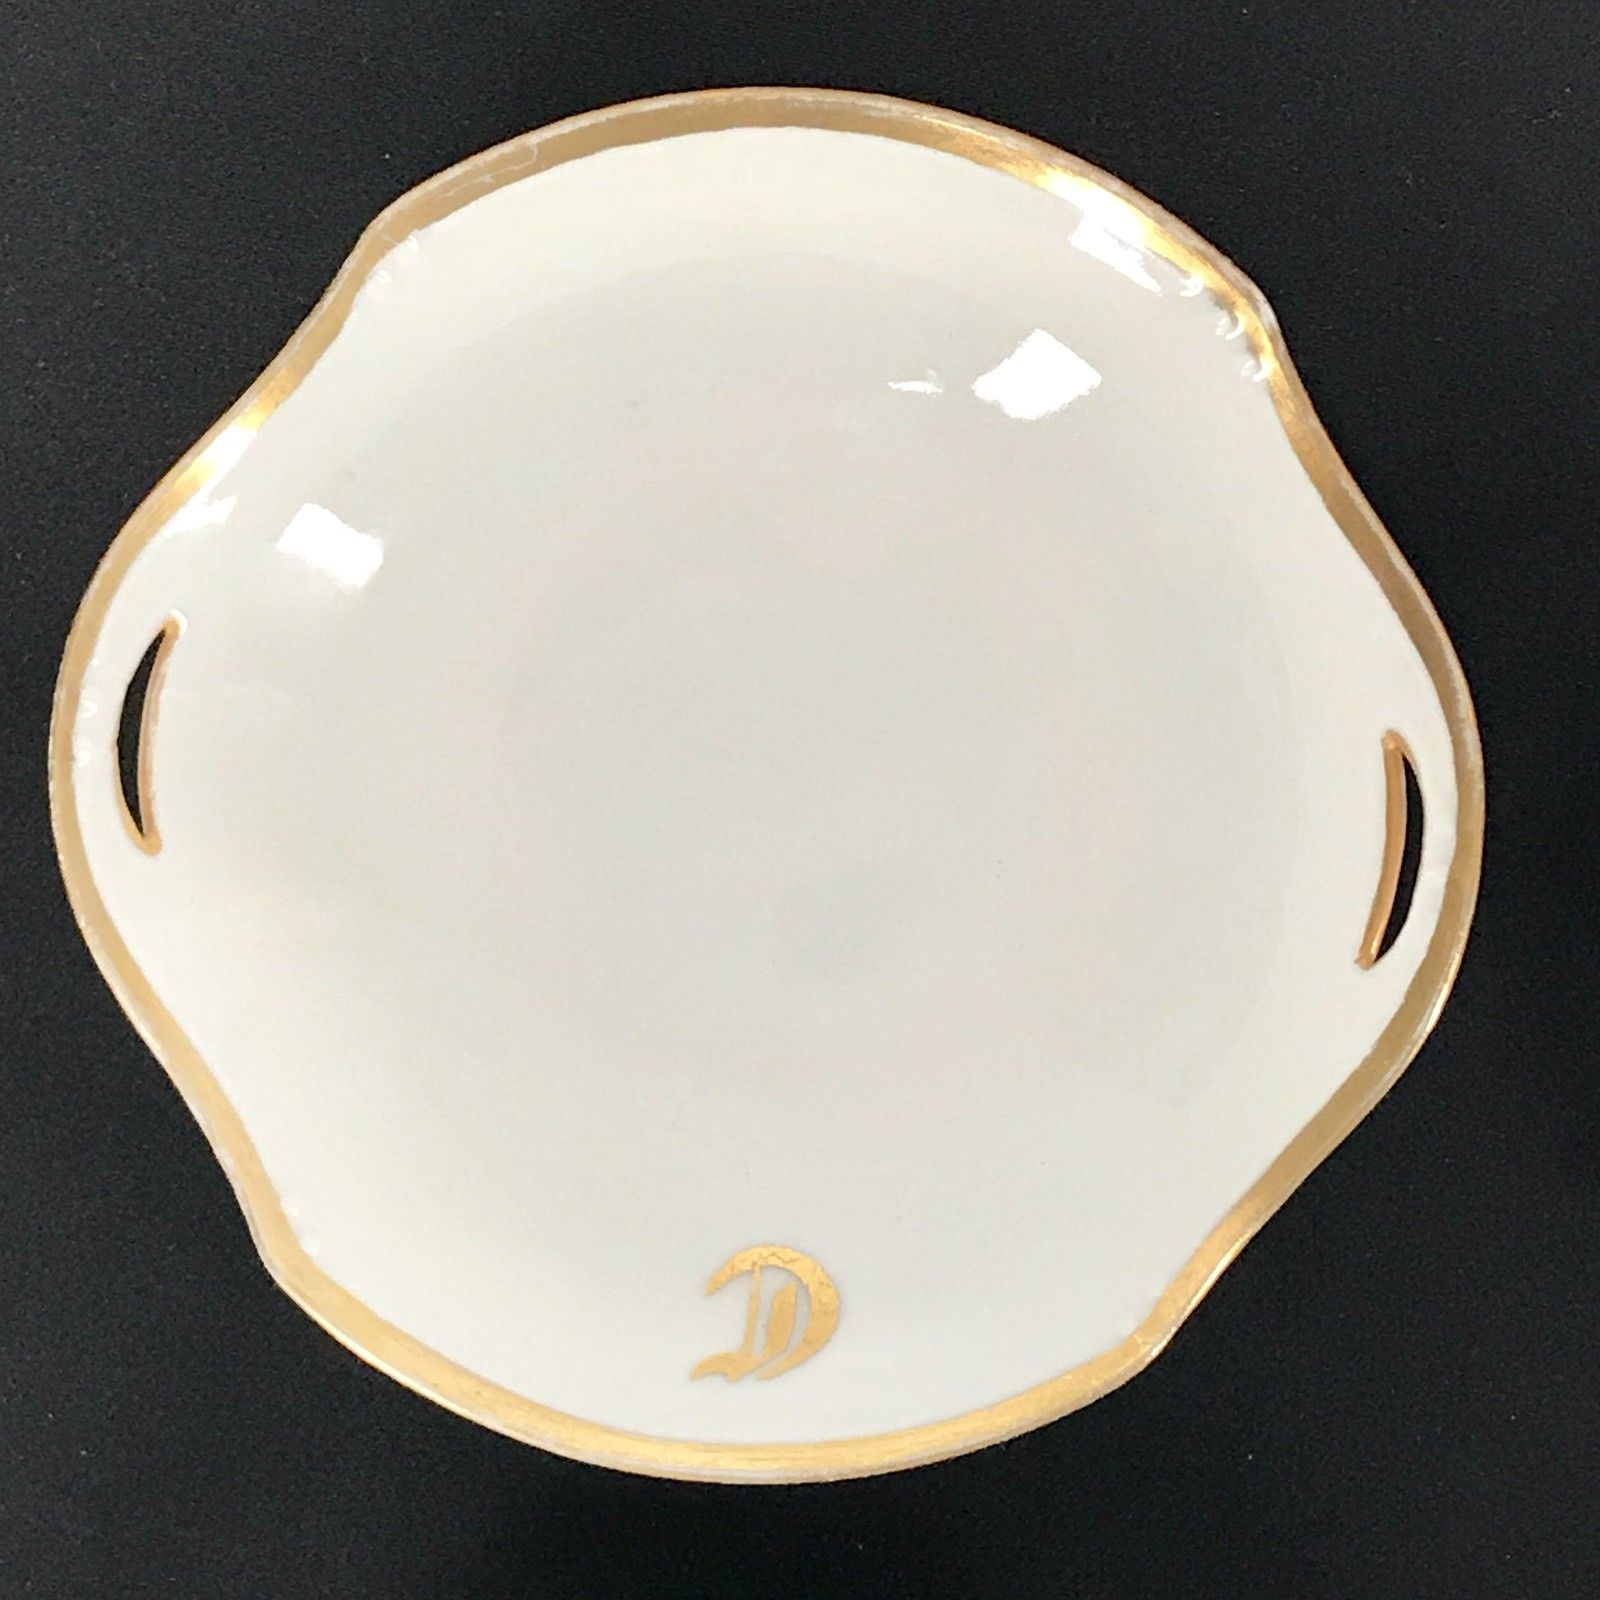 Vintage Made In Germany 1916 A.L.C Small China Dish Bowl Gold Trim Lot Of 4